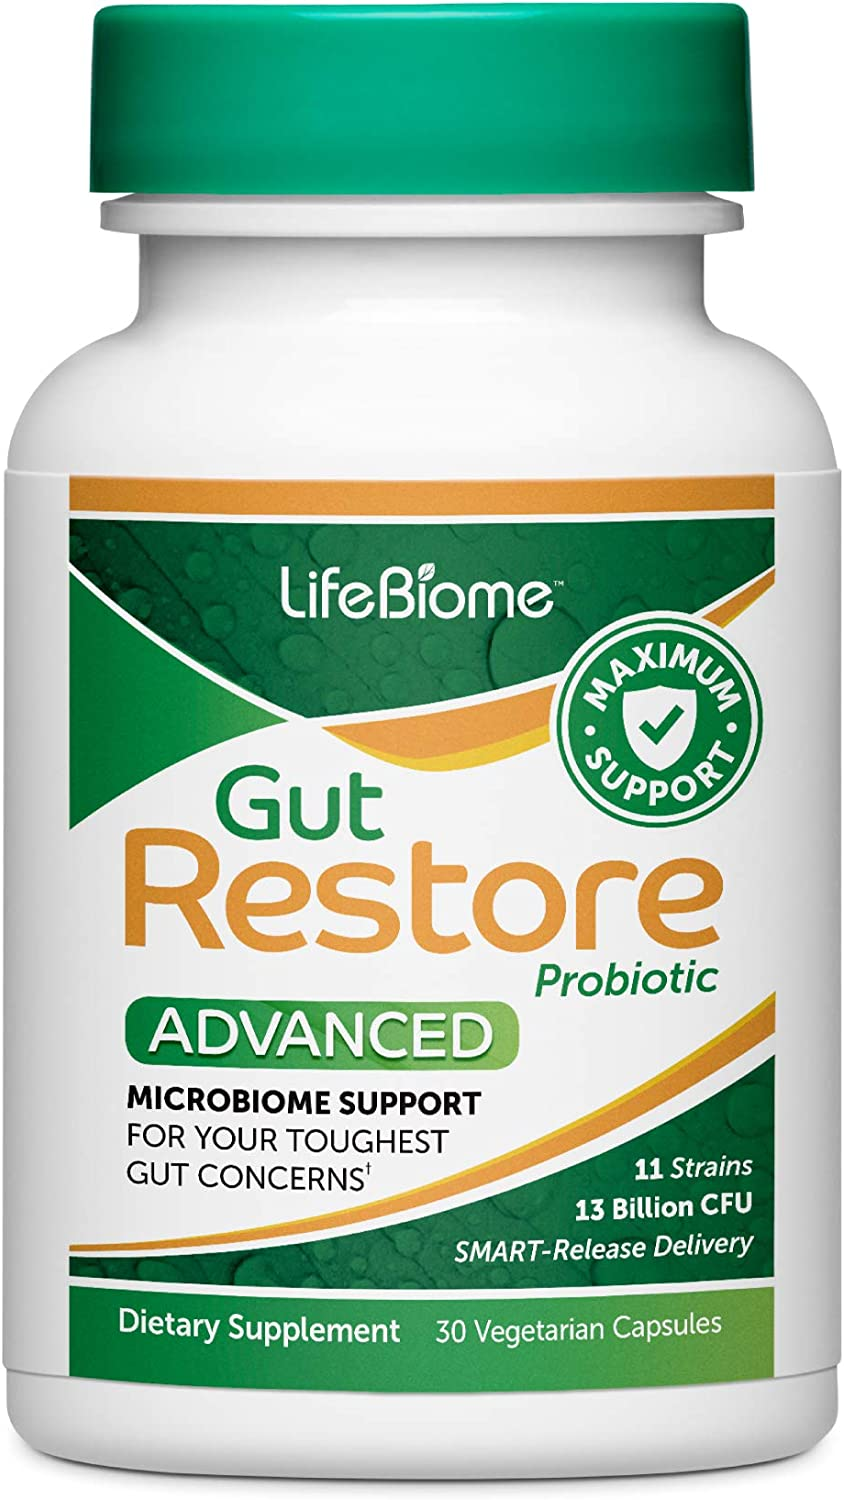 Dr. Drew Sinatra's LifeBiome Gut Restore Advanced, Maximum Strength Microbiome Probiotic with Fermented Botanicals, 11 Multi Strains, 30 Once-Daily Capsules, Vegetarian, Soy-, Dairy-, and Gluten Free